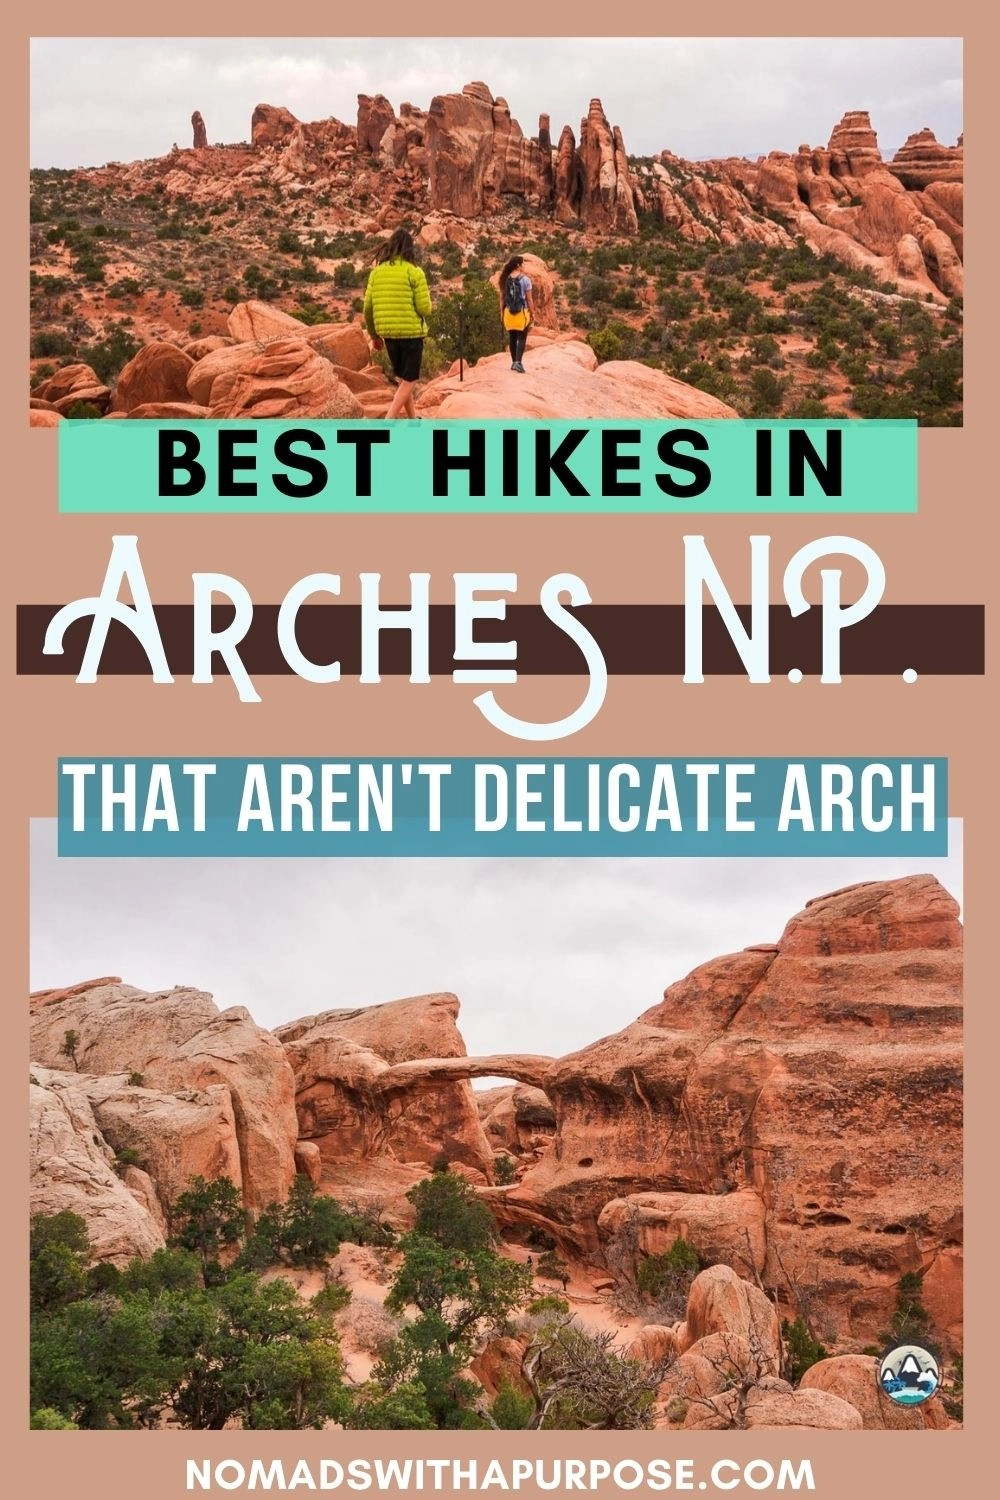 best hikes in Arches NP, double o arch